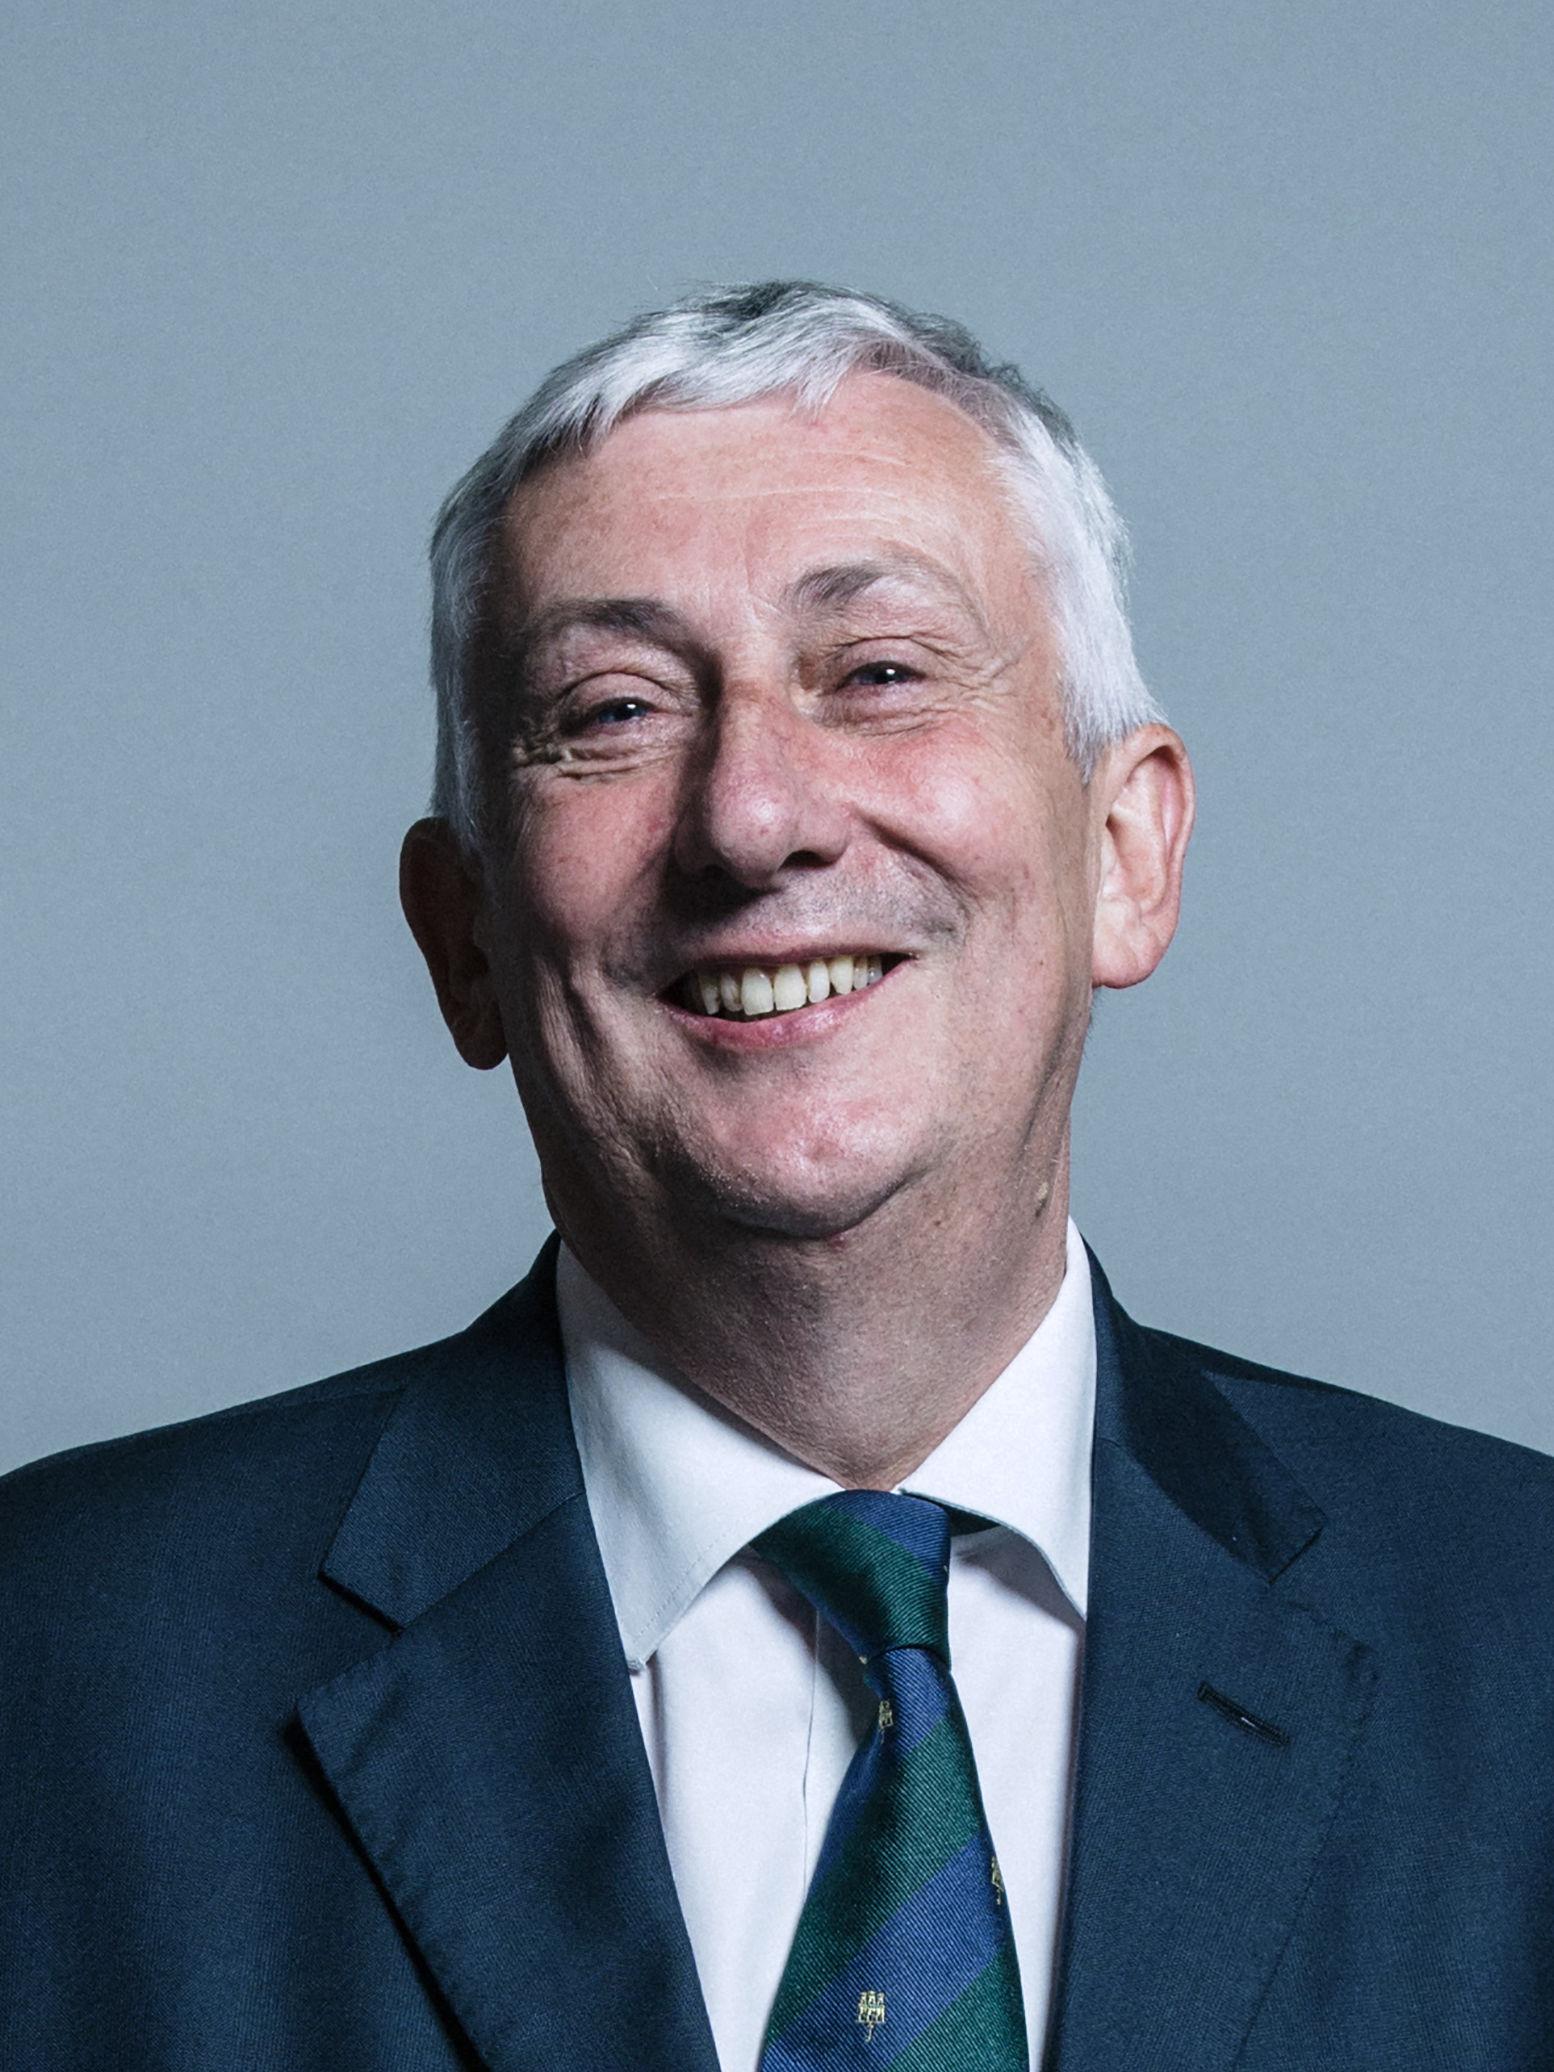 Official_portrait_of_Mr_Lindsay_Hoyle_crop_2.jpg